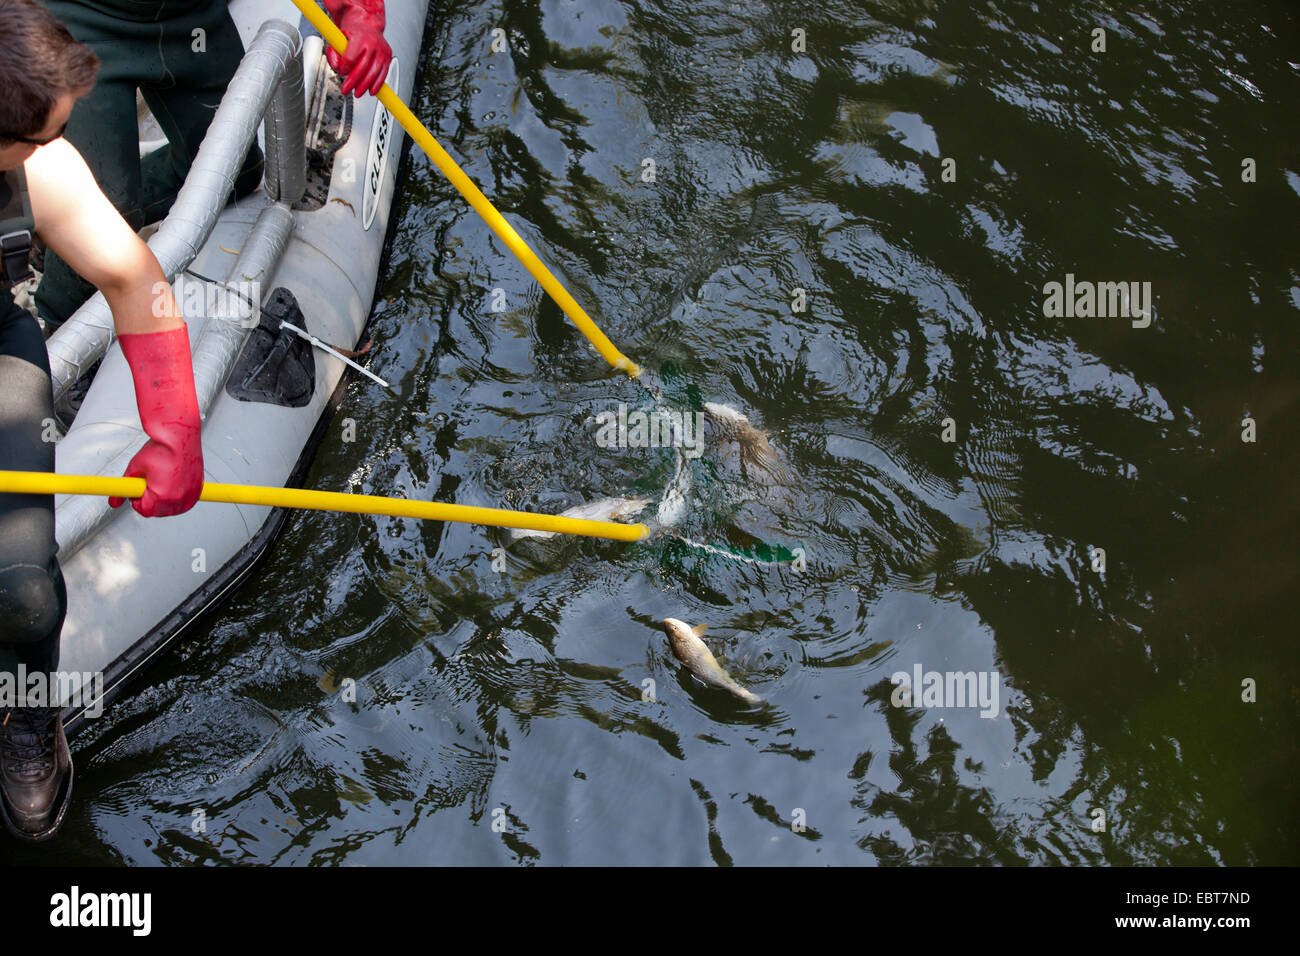 brown trout, river trout, brook trout (Salmo trutta fario), electrofishing for population control, Germany, Bavaria - Stock Image